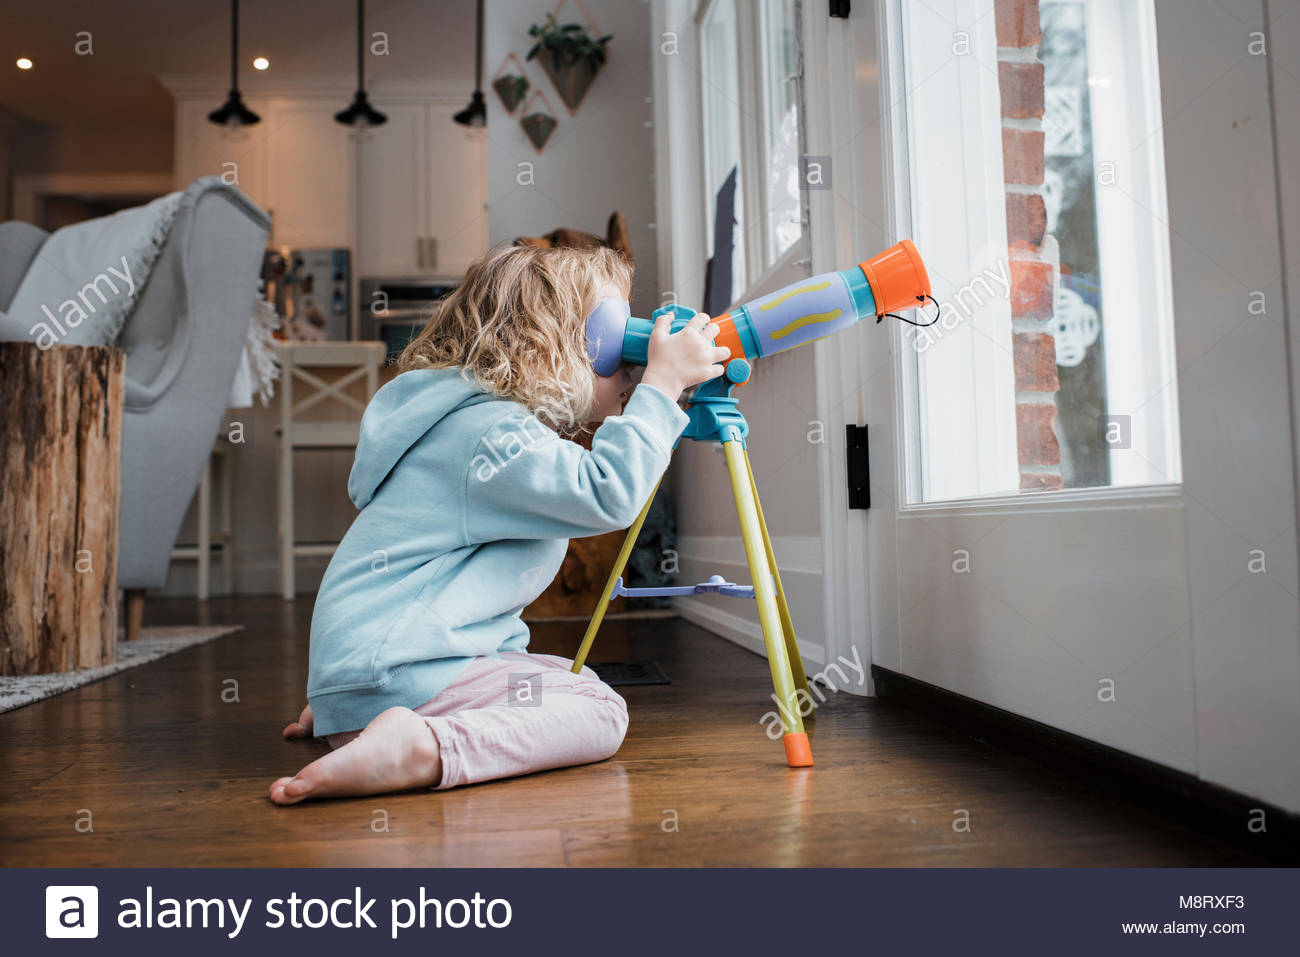 Side view of girl looking through telescope while kneeling by door at home - Stock Image